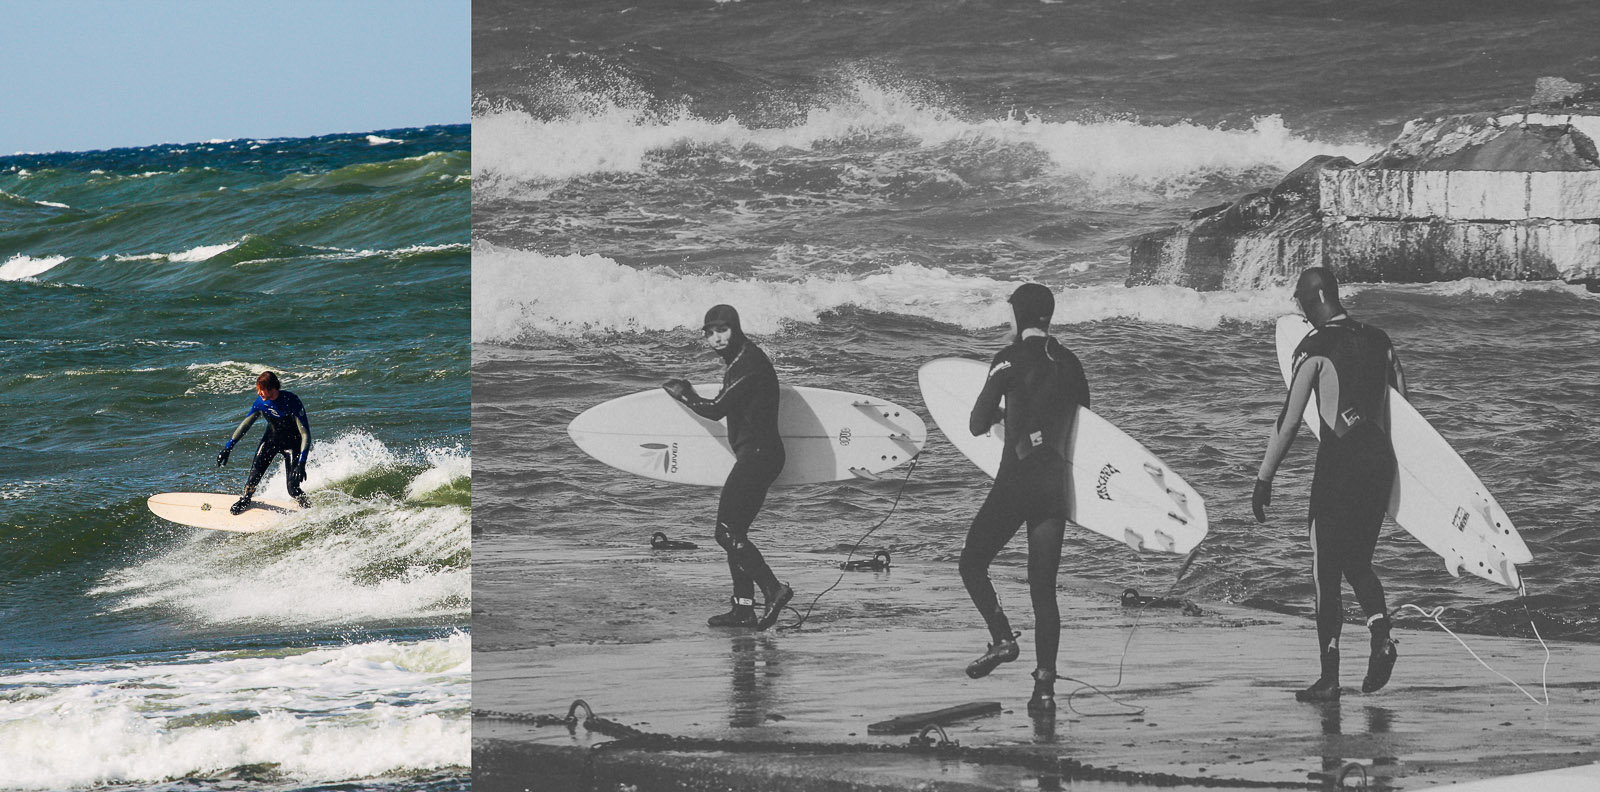 Sunshinestories-Surf-Vik-Österlen-Skåne-vik collage